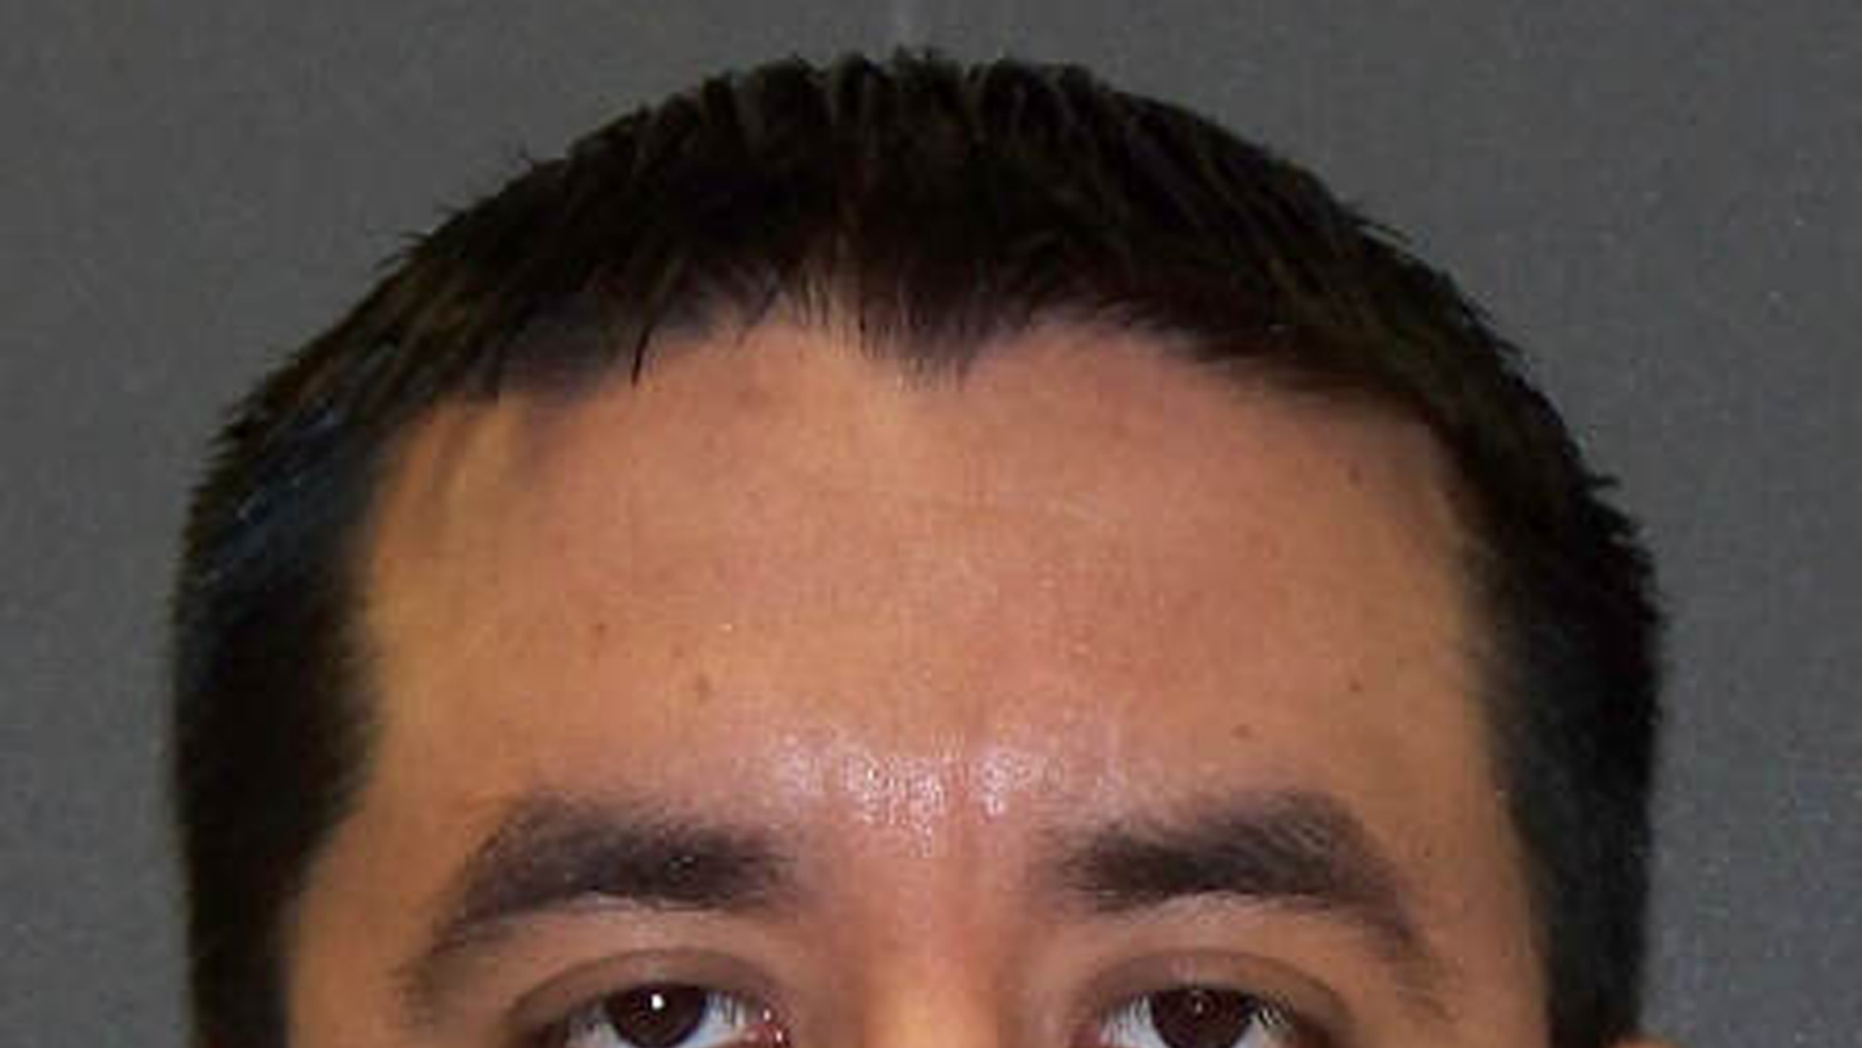 Rosendo Rodriguez III, who turned 38 Monday, was convicted of killing a 29-year-old woman, whose battered, naked body was found stuffed into a new piece of luggage and tossed in the trash in 2005.